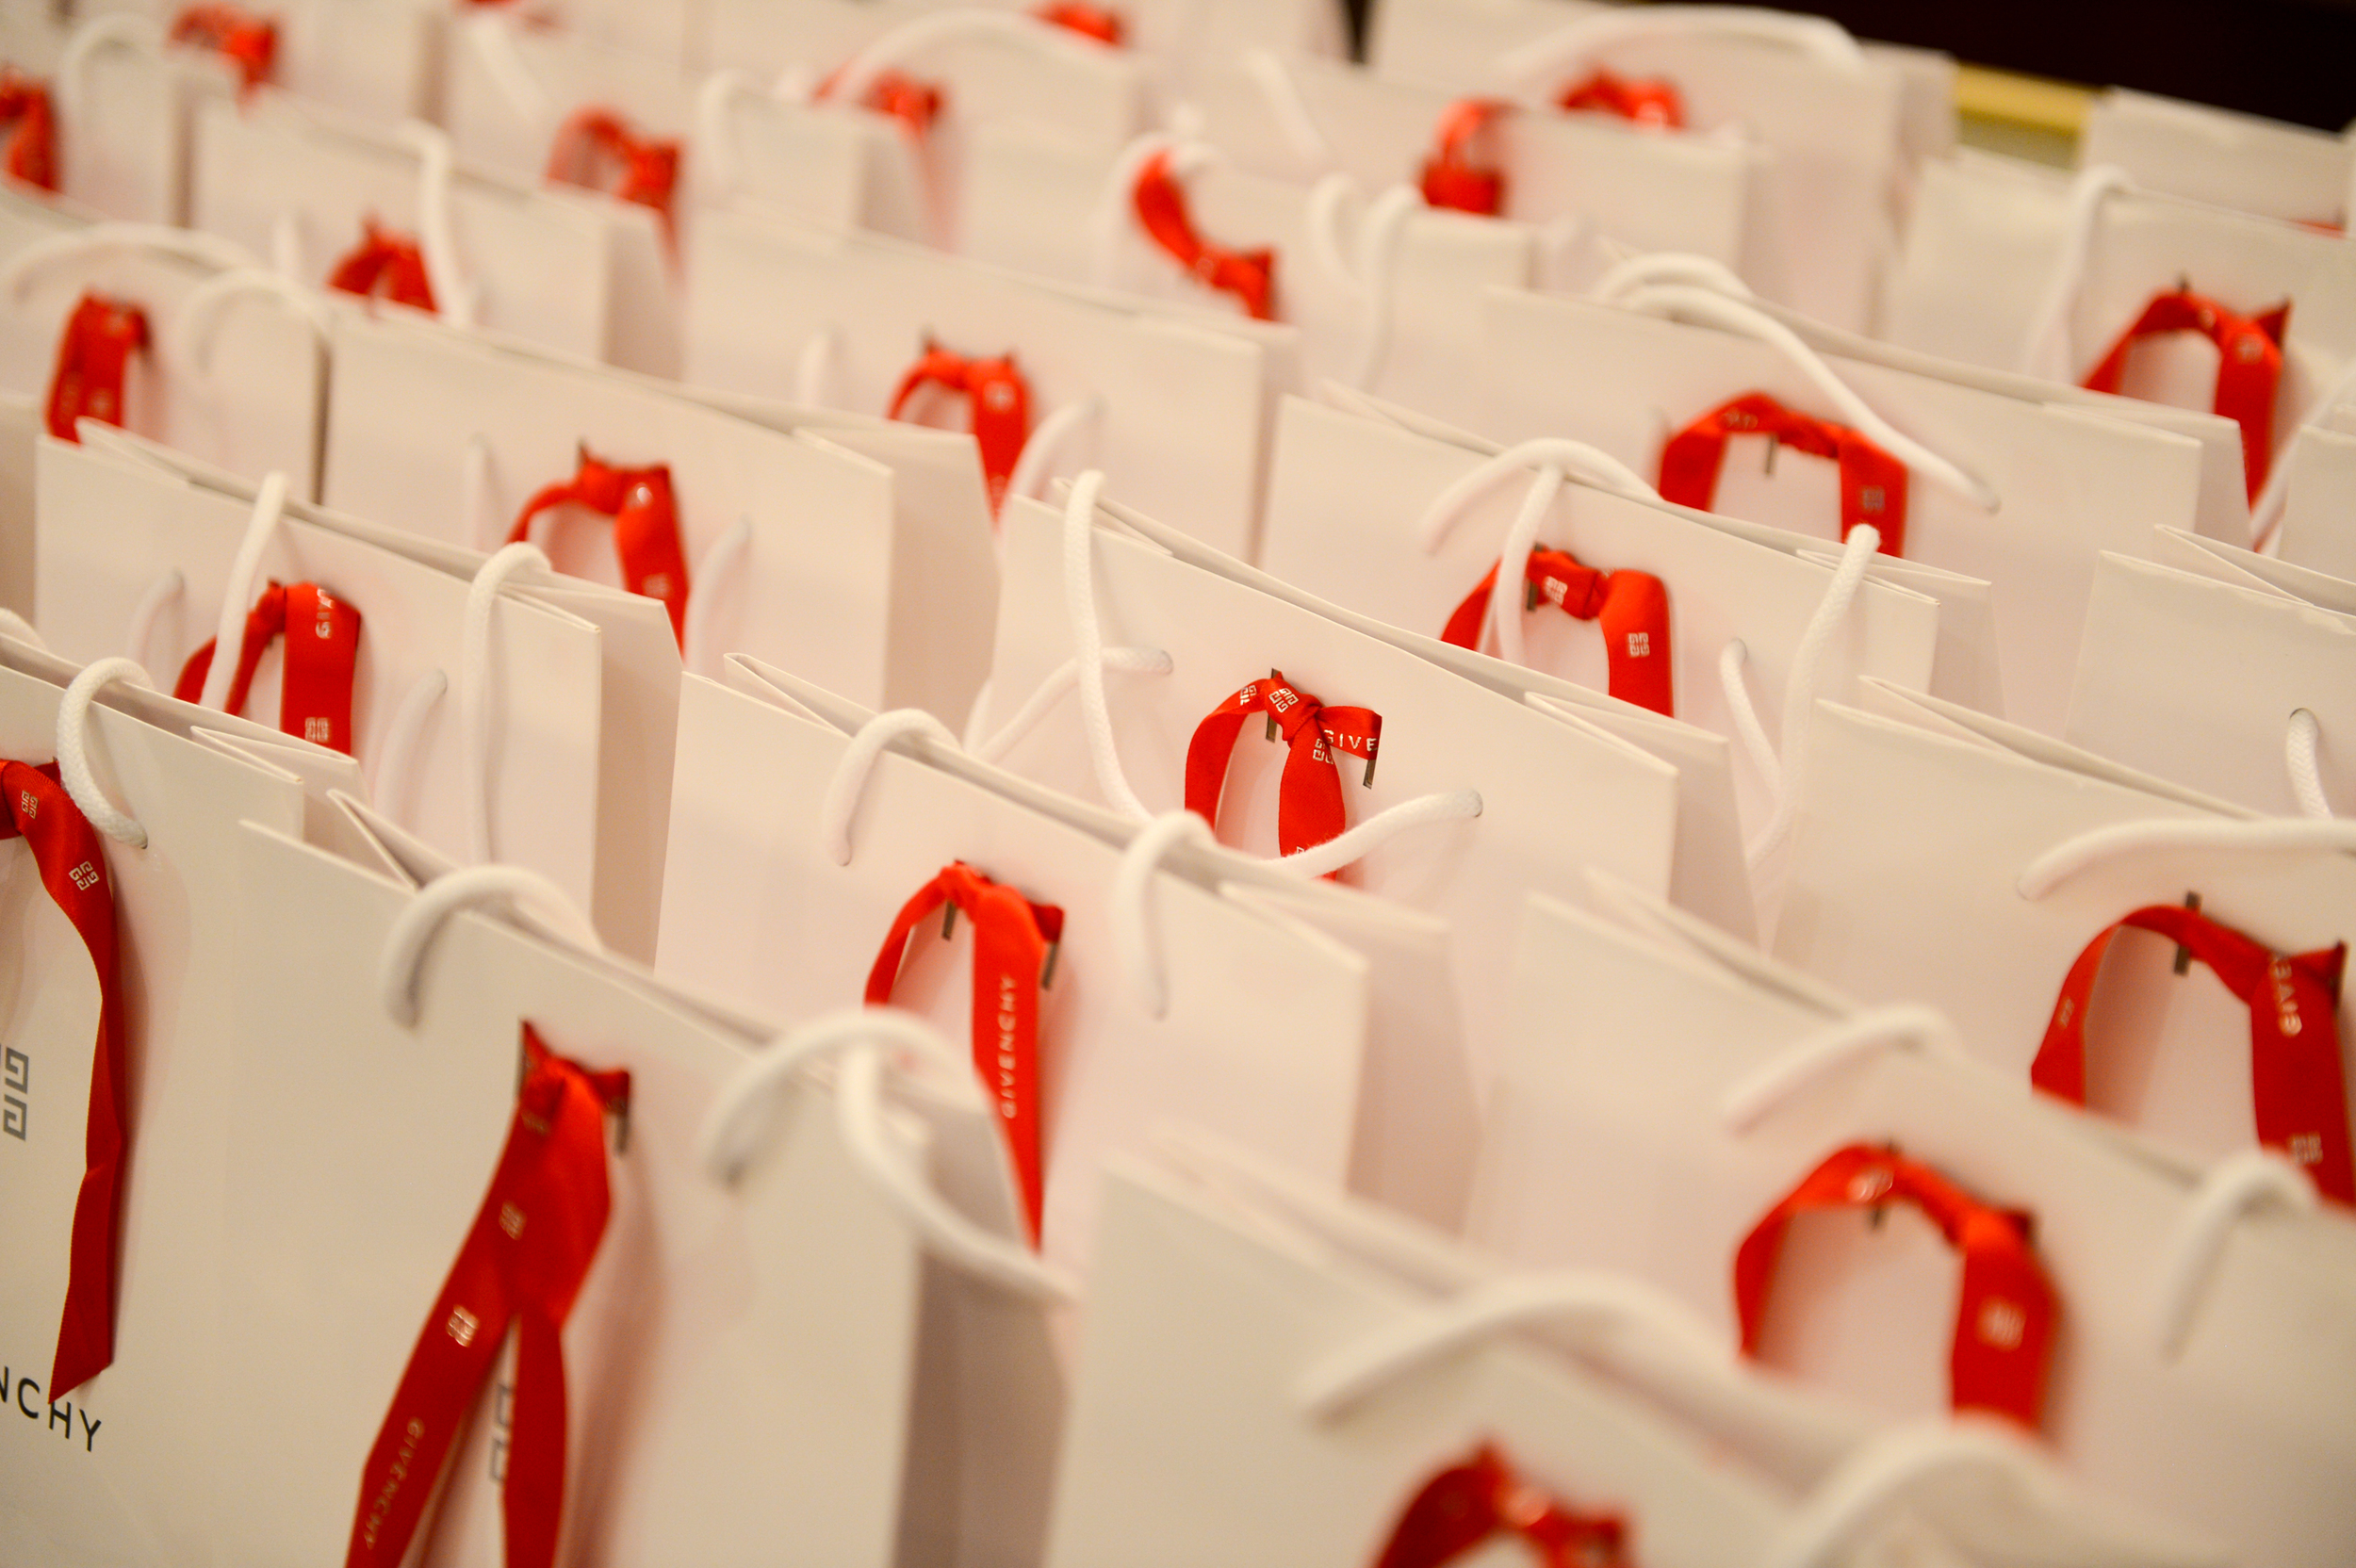 Departing event favors for guests at the 2014 Woodrow Wilson Center Awards.